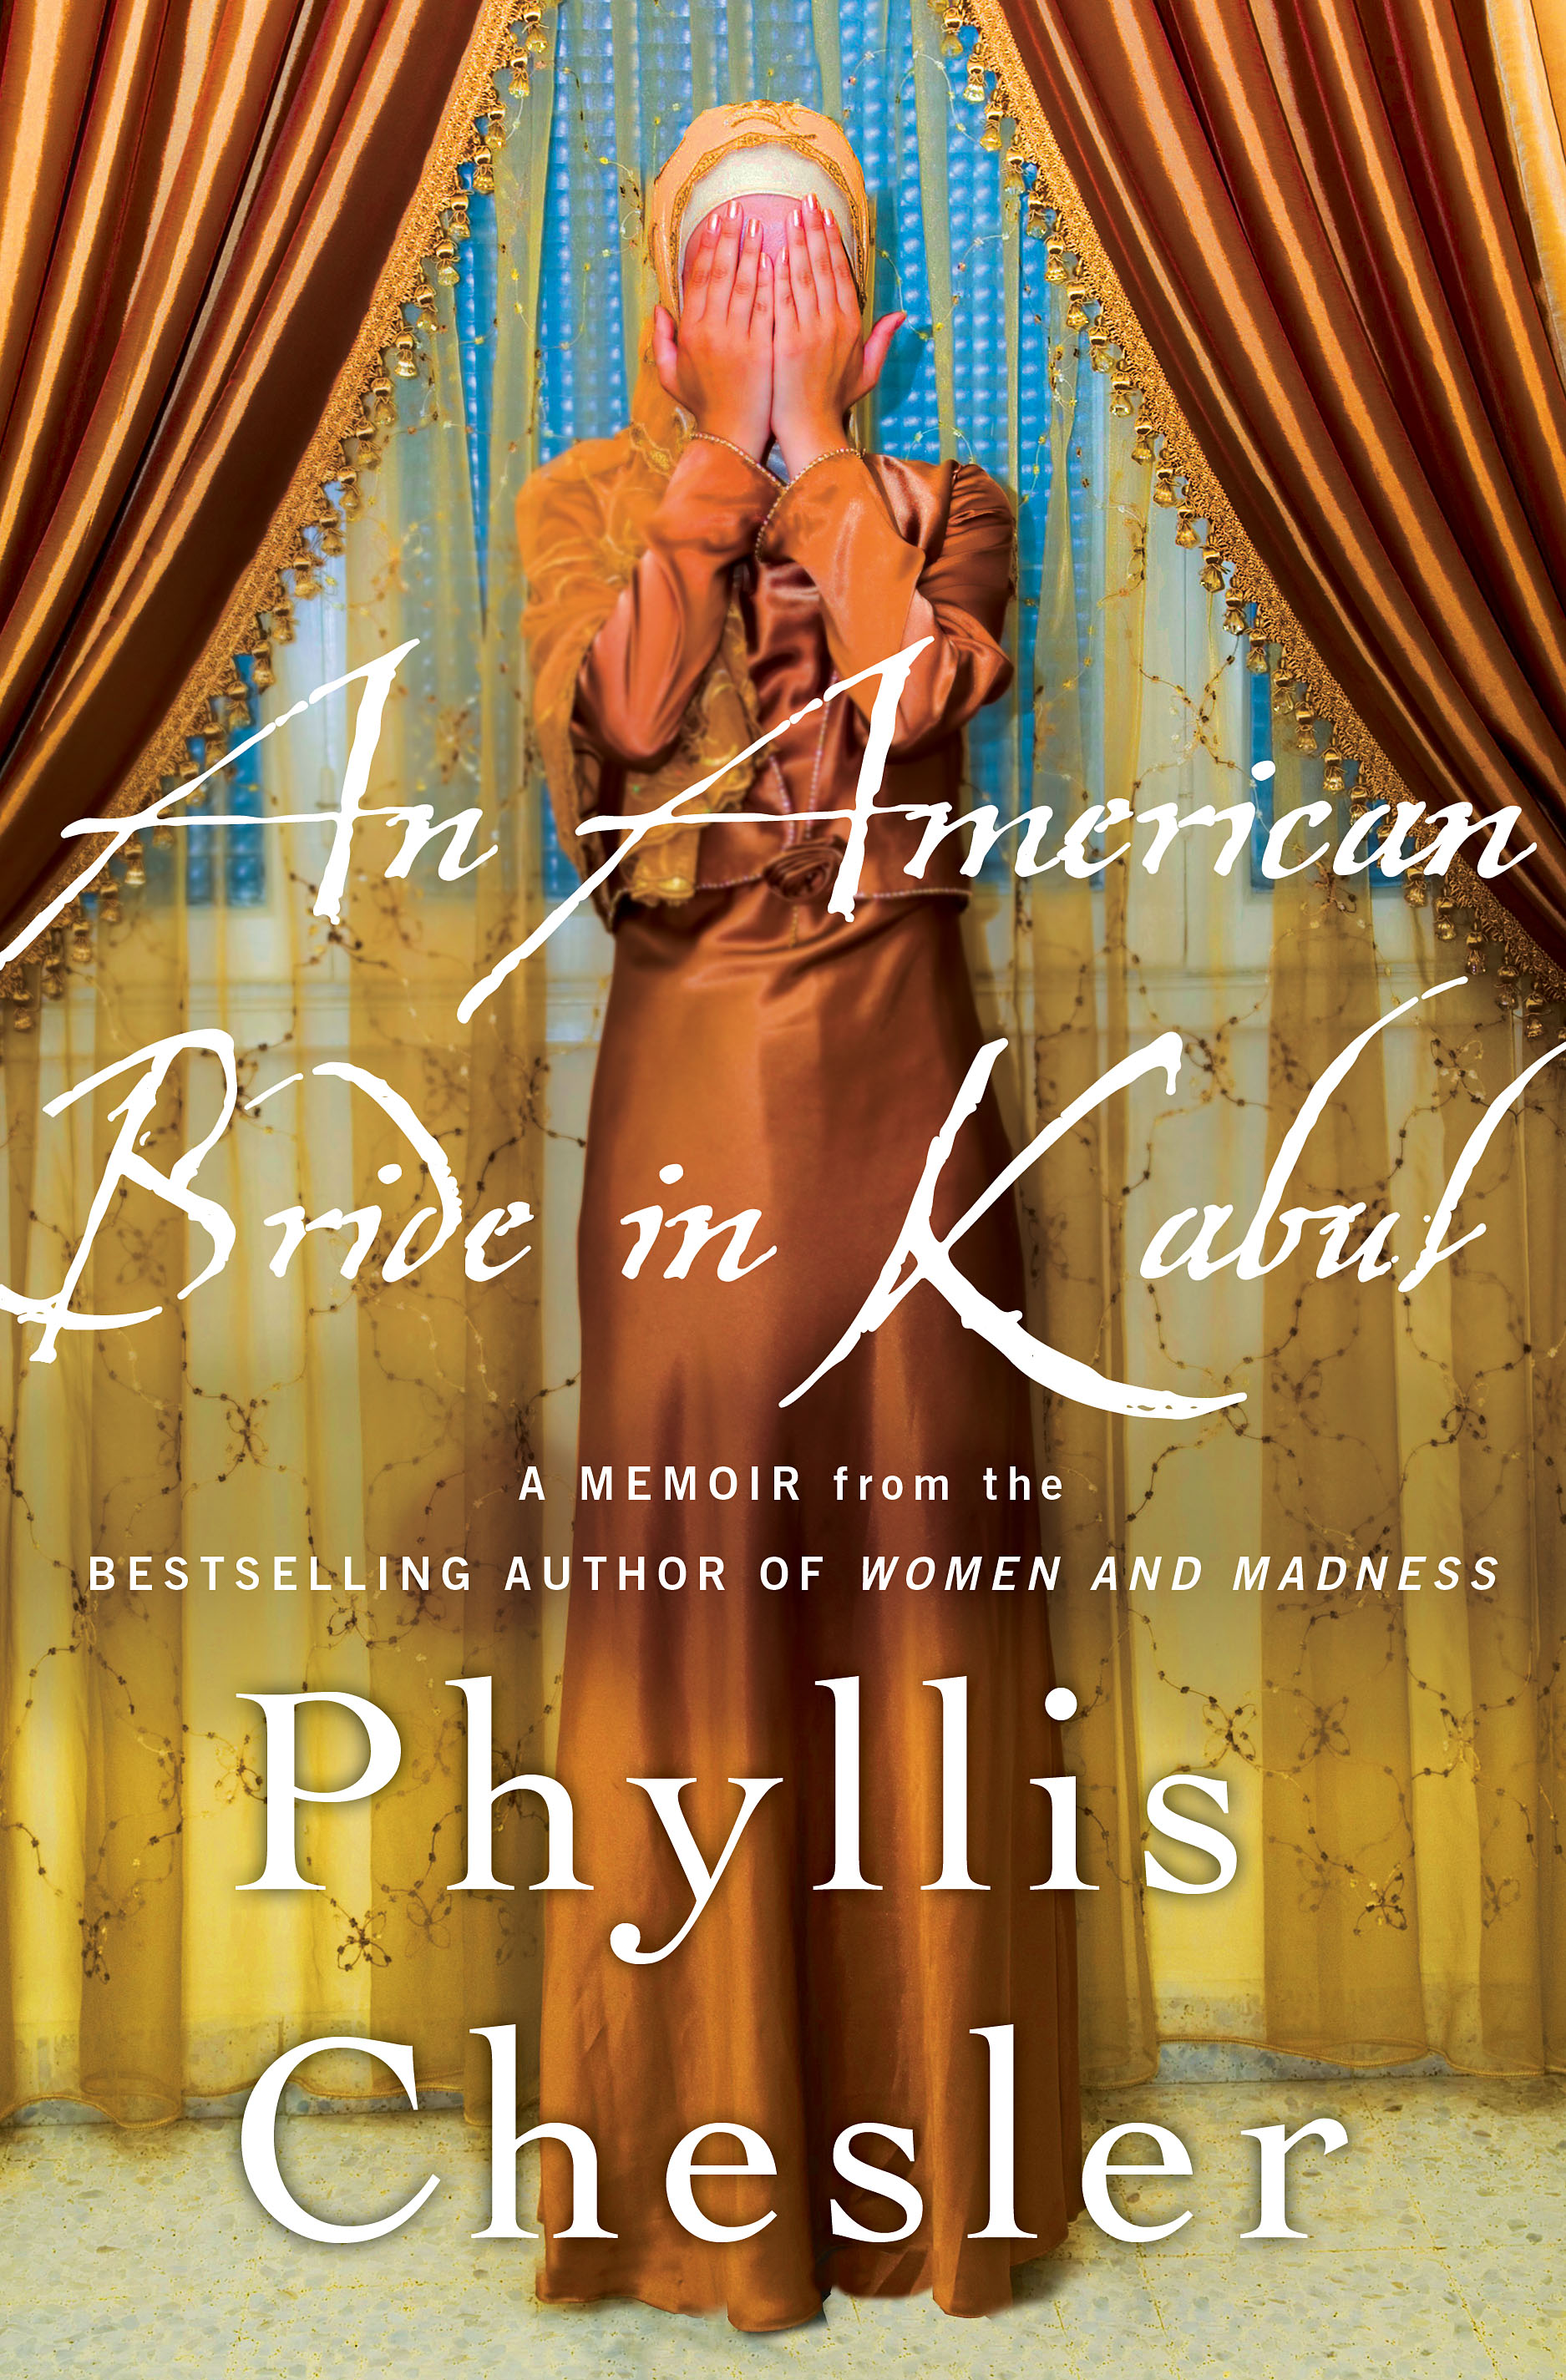 "Click photo to download. Caption: The cover of ""An American Bride in Kabul,"" by Phyllis Chesler. Credit: Palgrave Macmillan.                 0     0     1     2     17     JNS     1     1     18     14.0                            Normal     0                     false     false     false         EN-US     JA     X-NONE                                                                                                                                                                                                                                                                                                                                                                                                                                                                                                                                                                                                                                                                                                                    /* Style Definitions */ table.MsoNormalTable 	{mso-style-name:""Table Normal""; 	mso-tstyle-rowband-size:0; 	mso-tstyle-colband-size:0; 	mso-style-noshow:yes; 	mso-style-priority:99; 	mso-style-parent:""""; 	mso-padding-alt:0in 5.4pt 0in 5.4pt; 	mso-para-margin:0in; 	mso-para-margin-bottom:.0001pt; 	mso-pagination:widow-orphan; 	font-size:12.0pt; 	font-family:Cambria; 	mso-ascii-font-family:Cambria; 	mso-ascii-theme-font:minor-latin; 	mso-hansi-font-family:Cambria; 	mso-hansi-theme-font:minor-latin;}                          0     0     1     4     26     JNS     1     1     29     14.0                            Normal     0                     false     false     false         EN-US     JA     X-NONE                                                                                                                                                                                                                                                                                                                                                                                                                                                                                                                                                                                                                                                                                                                    /* Style Definitions */ table.MsoNormalTable 	{mso-style-name:""Table Normal""; 	mso-tstyle-rowband-size:0; 	mso-tstyle-colband-size:0; 	mso-style-noshow:yes; 	mso-style-priority:99; 	mso-style-parent:""""; 	mso-padding-alt:0in 5.4pt 0in 5.4pt; 	mso-para-margin:0in; 	mso-para-margin-bottom:.0001pt; 	mso-pagination:widow-orphan; 	font-size:12.0pt; 	font-family:Cambria; 	mso-ascii-font-family:Cambria; 	mso-ascii-theme-font:minor-latin; 	mso-hansi-font-family:Cambria; 	mso-hansi-theme-font:minor-latin;}"